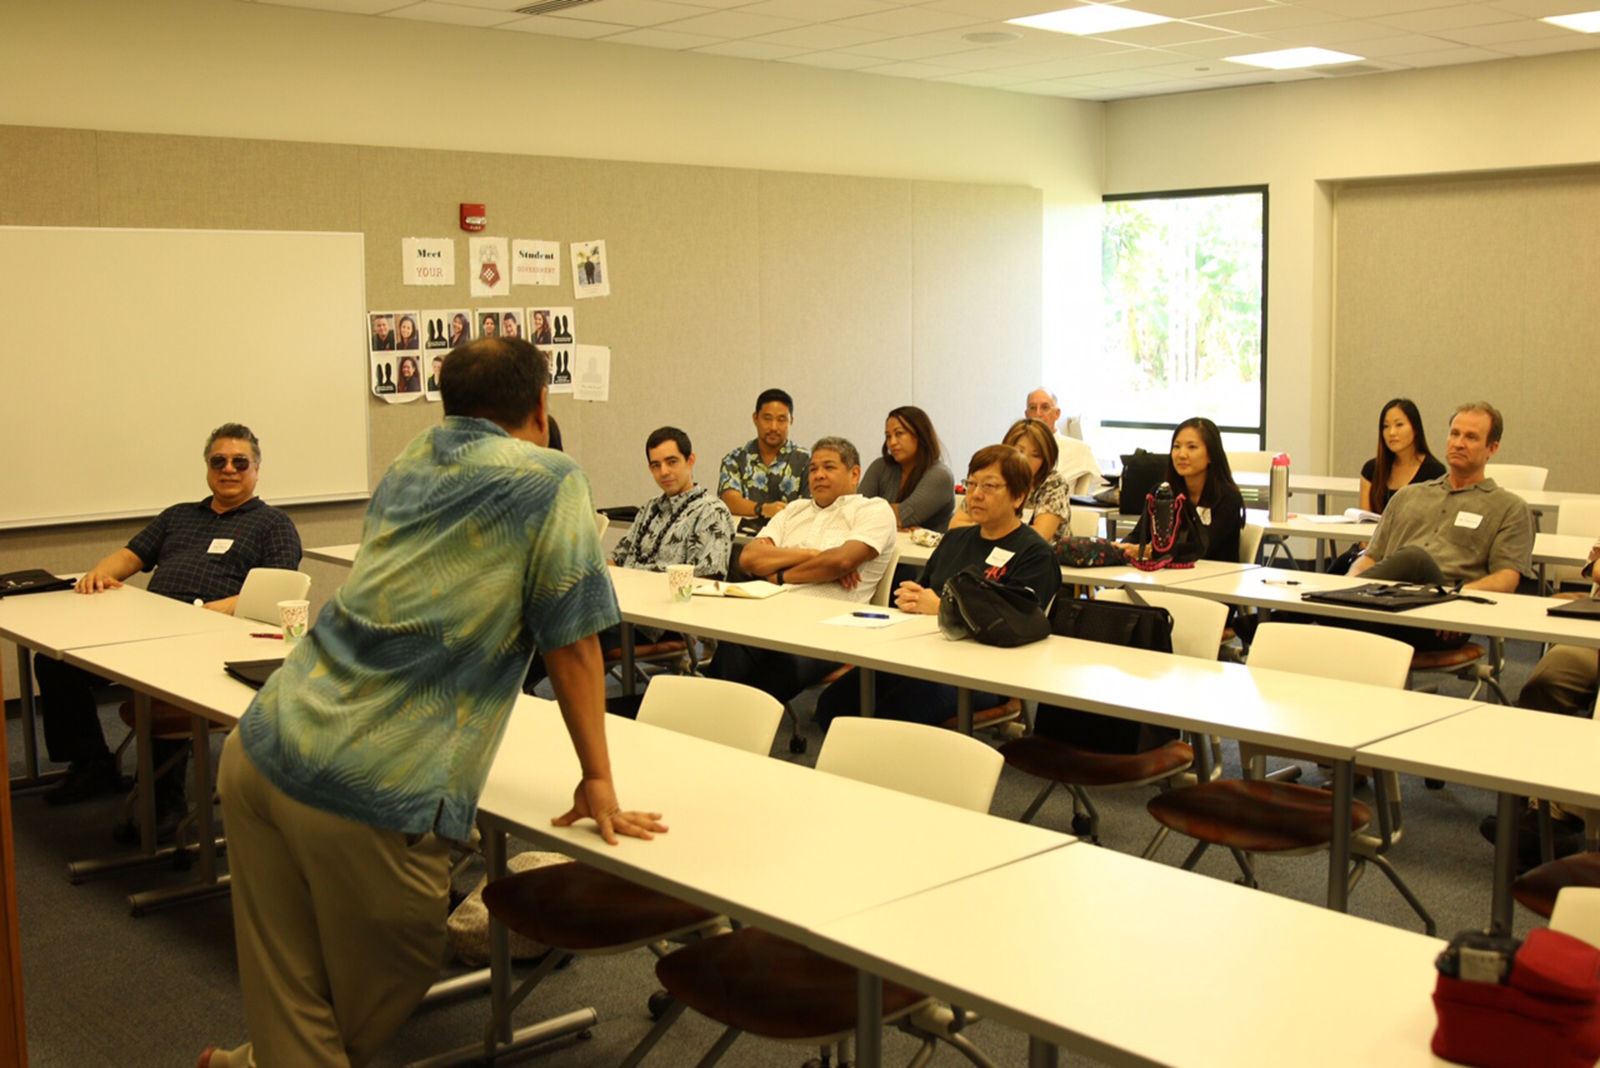 Breakout session during Professional Development day.